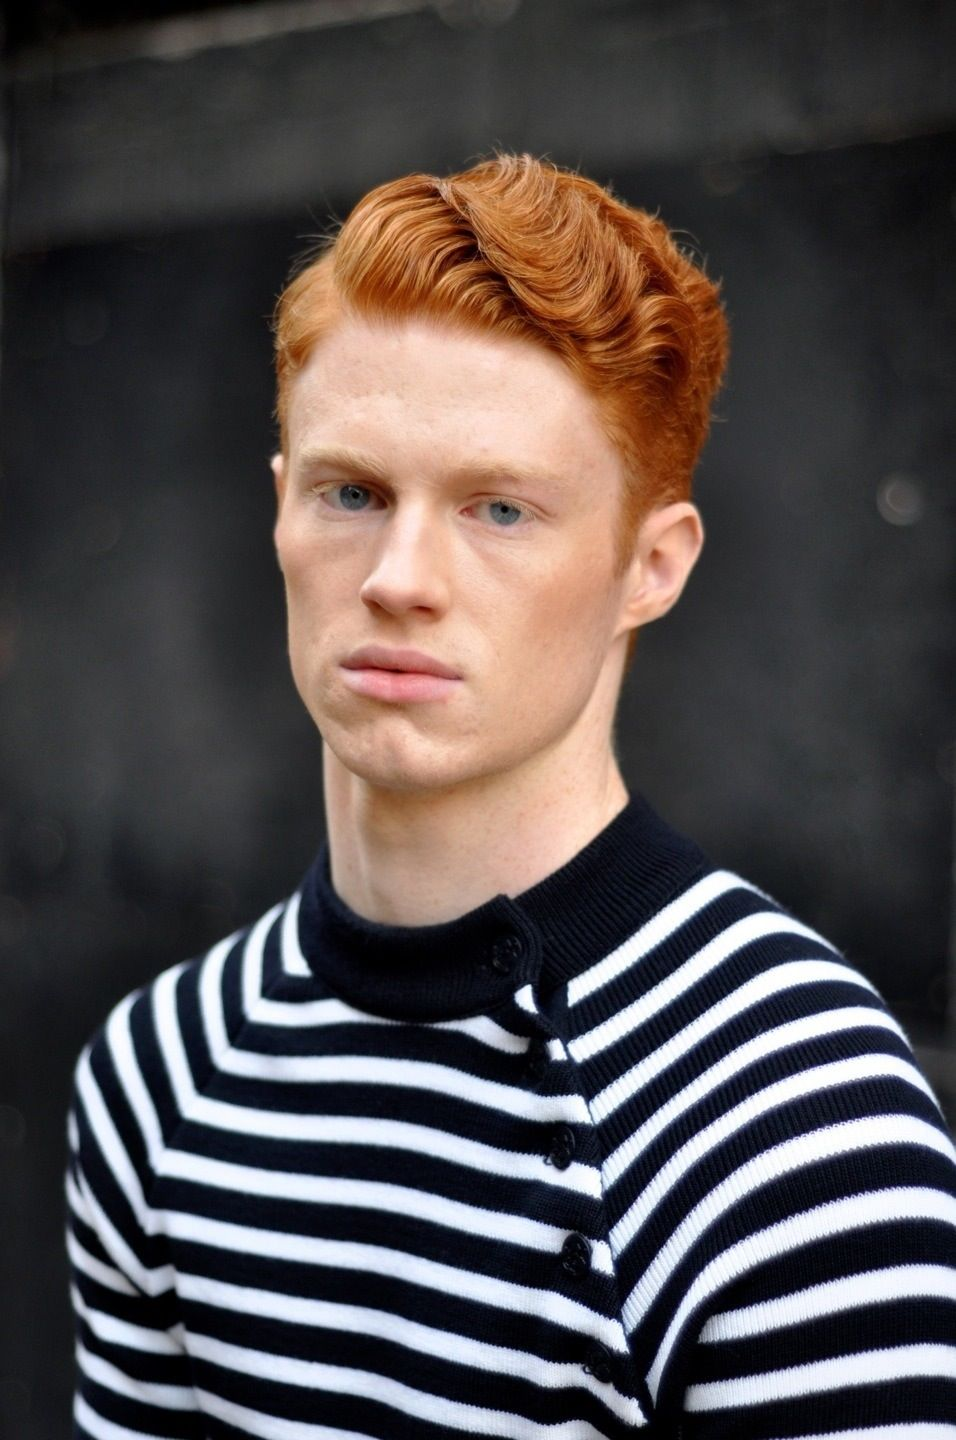 up-pic.net i imagesize:956x1440 nude 13 17 Best images about My Ginge Darling on Pinterest | Eddie redmayne, Red  beard and Men hair